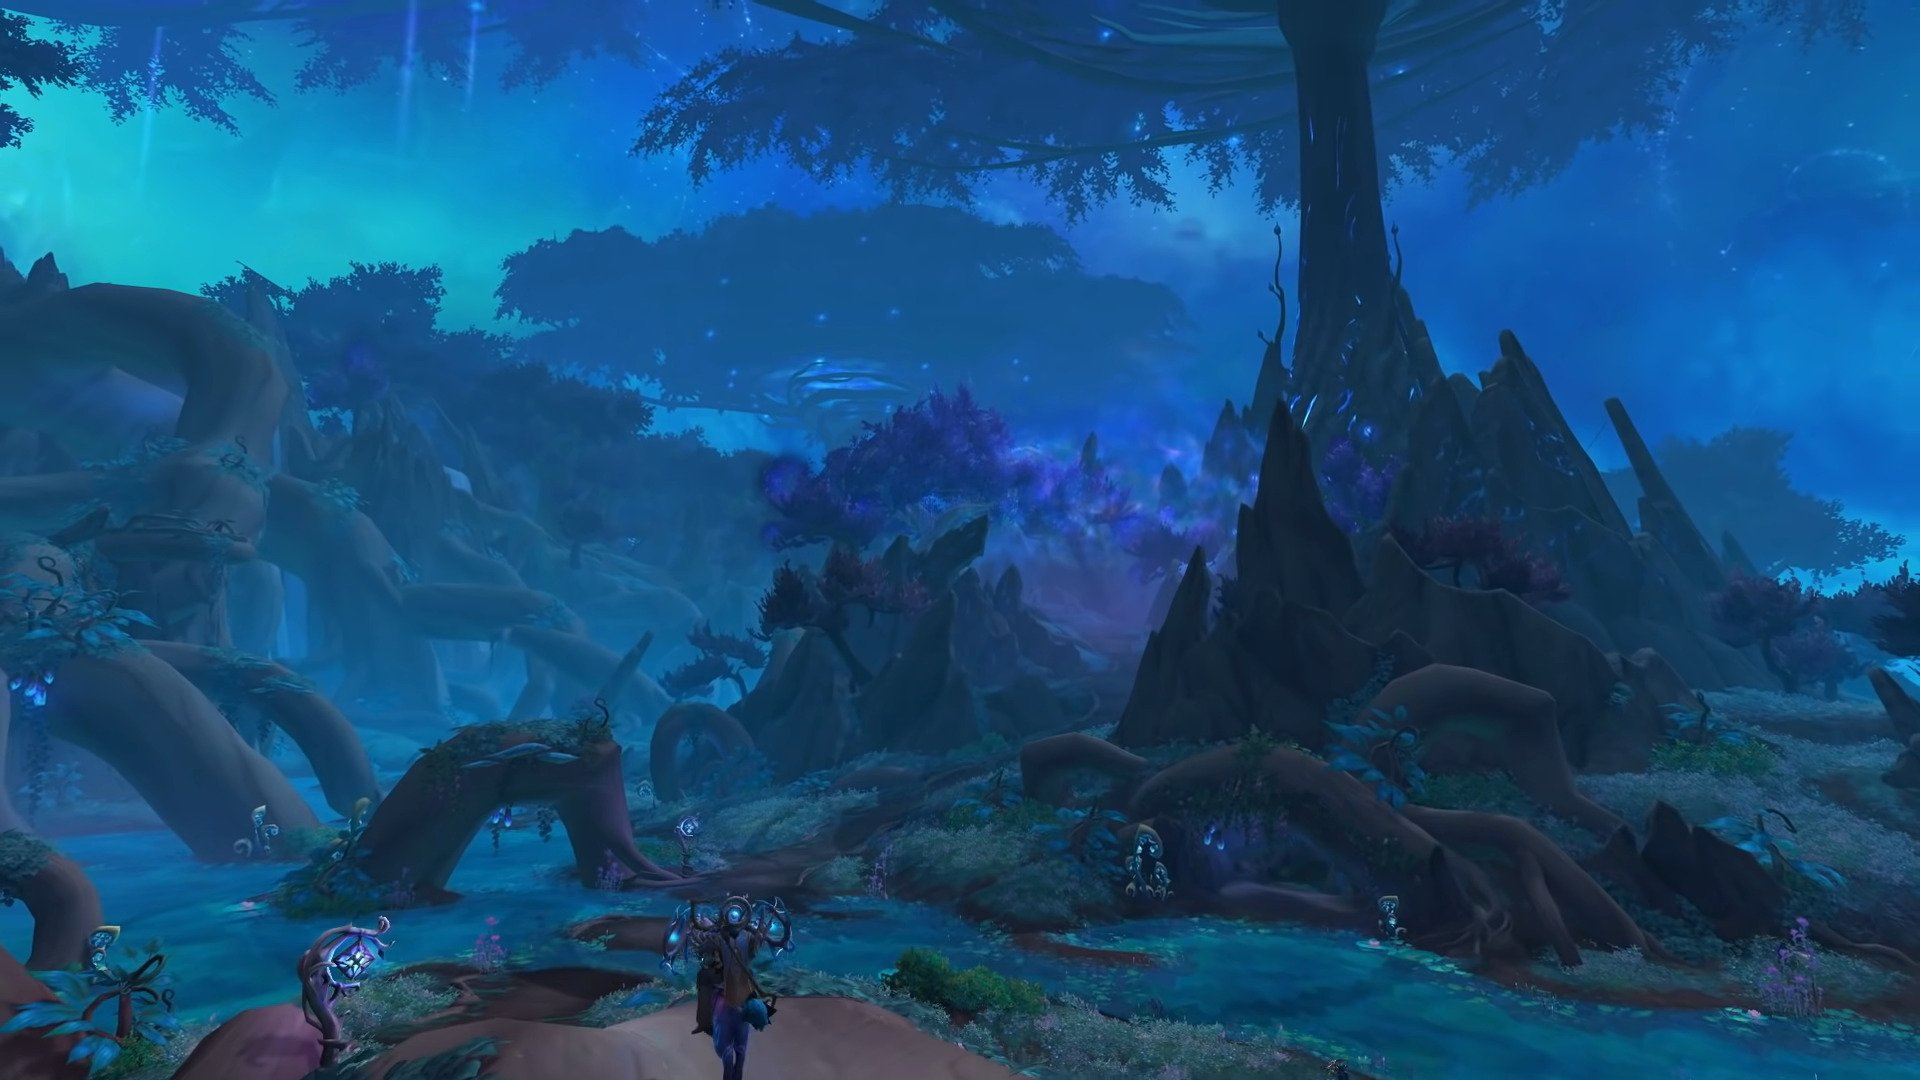 World Of Warcraft: Shadowlands Prepatch Set To Nerf All Previous Expansion's Raids And Dungeons